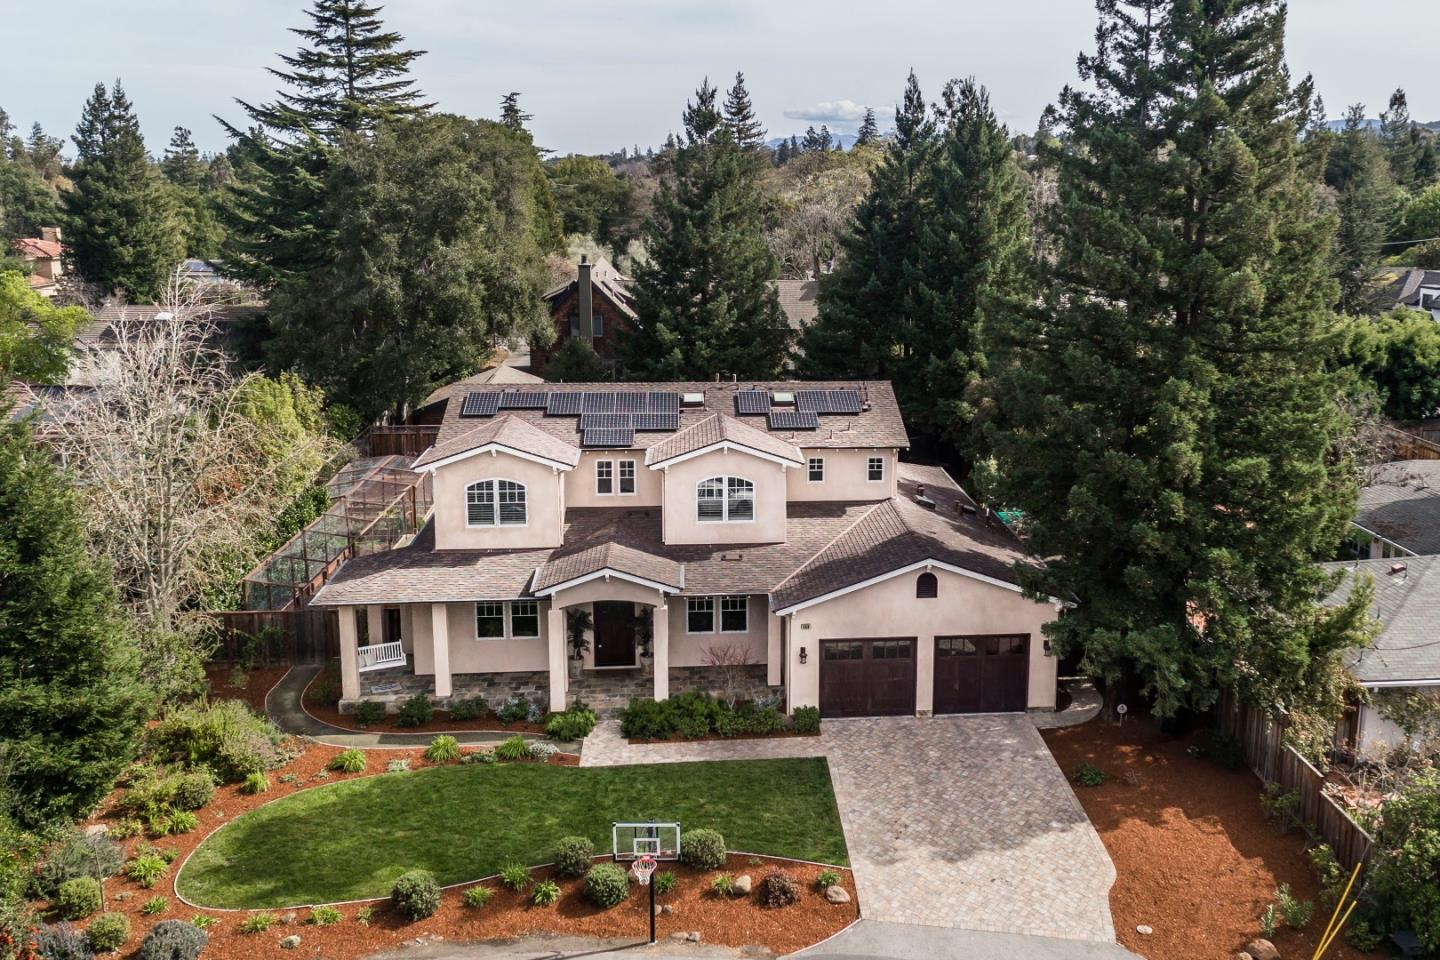 Single Family Home for Sale at 858 Hierra Court 858 Hierra Court Los Altos, California 94024 United States